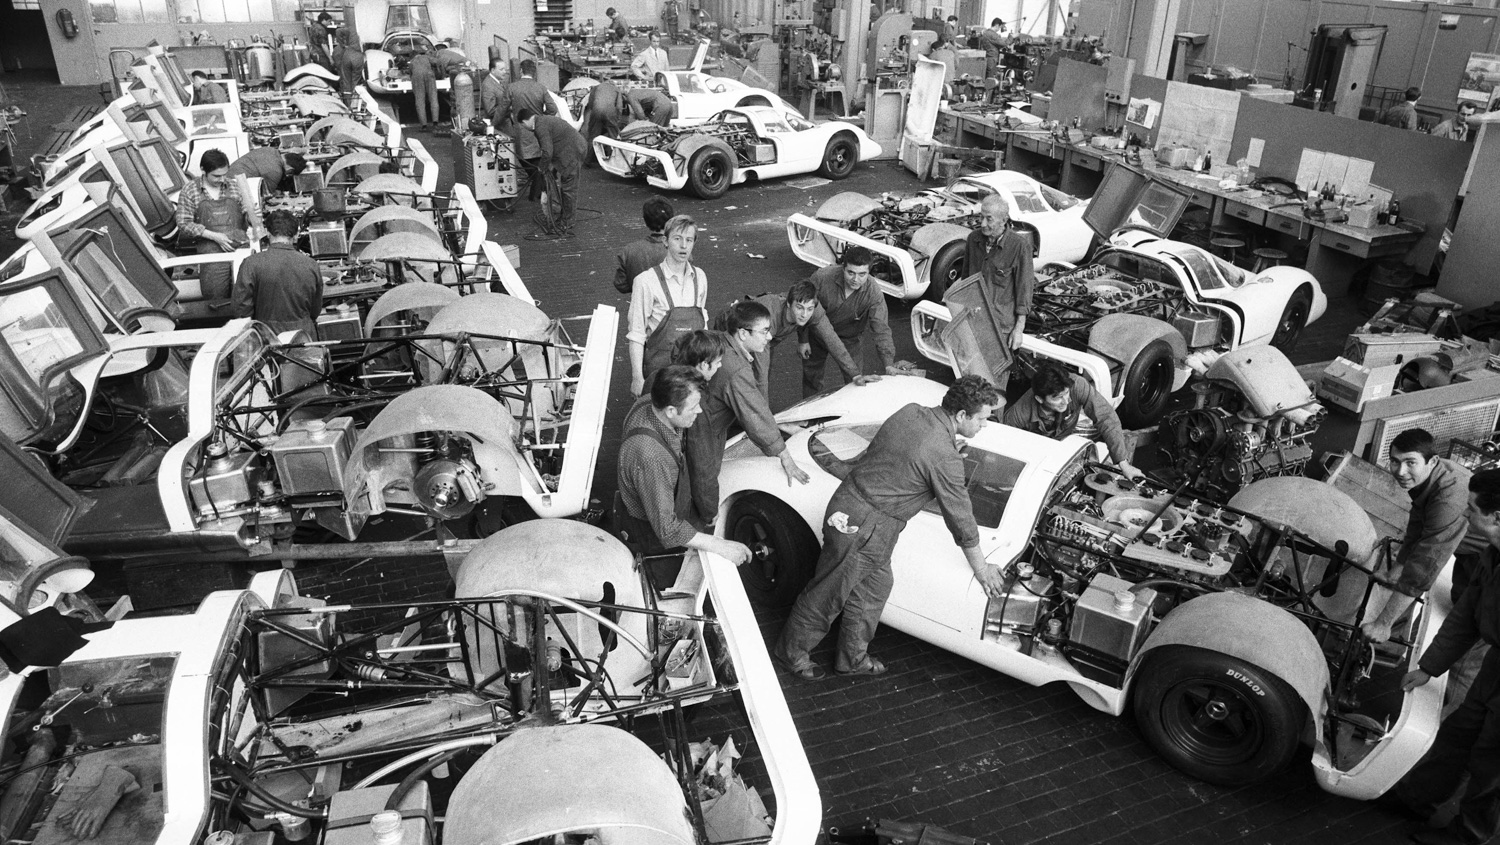 Construction of 25 racing cars for the homologation of the 917.